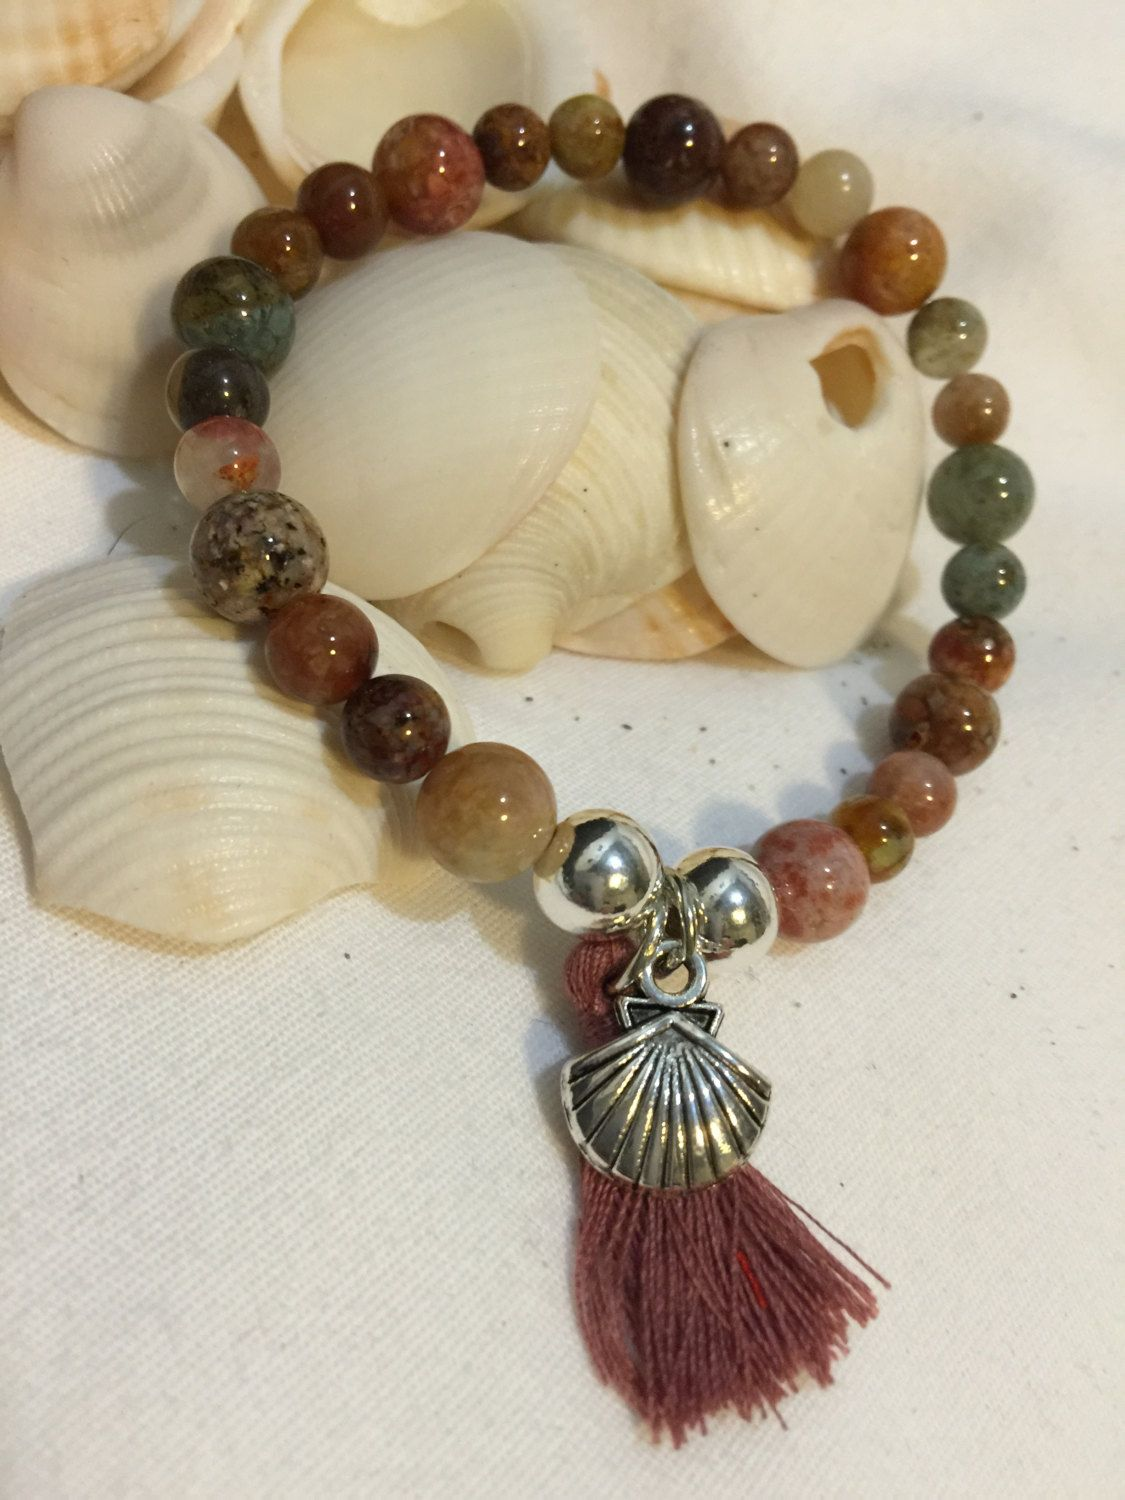 Ocean Agate Beaded Boho Beach Bracelet (8mm & 6mm) with Sterling Silver Beads, Tassel and Silver Shell Charm by DreamCuff on Etsy